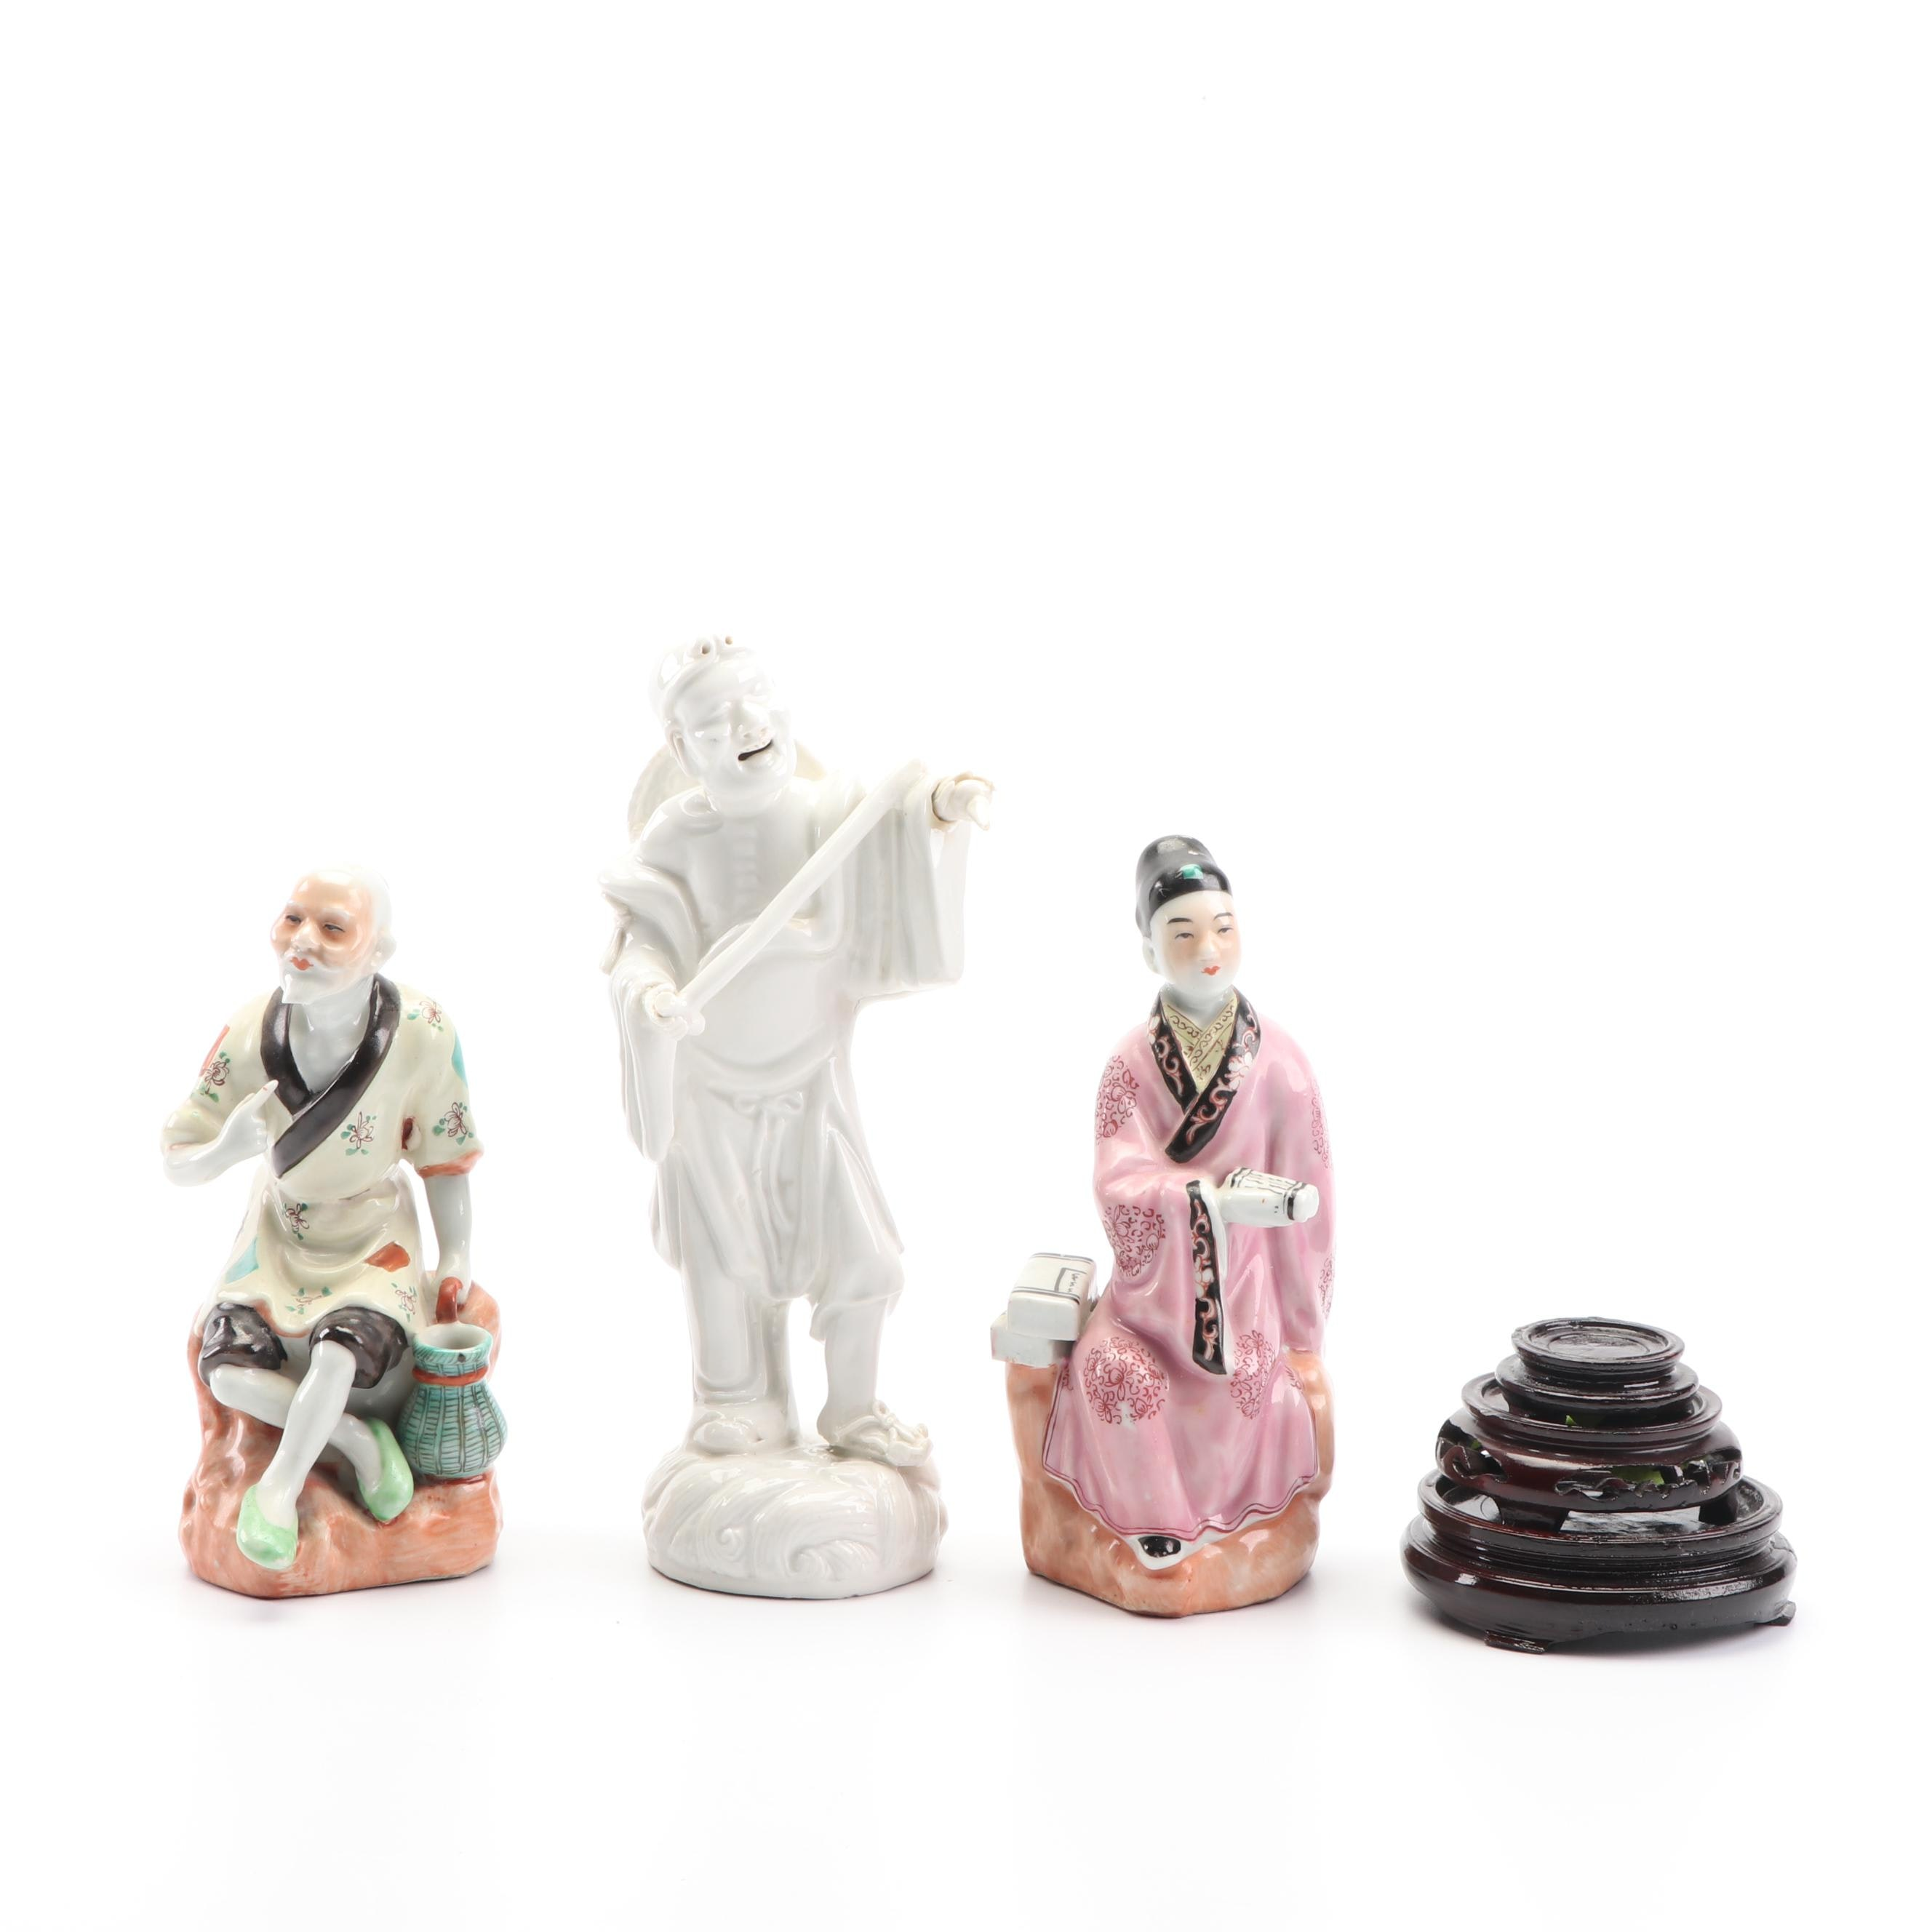 Chinese Ceramic Figurines with Carved Wood Stands